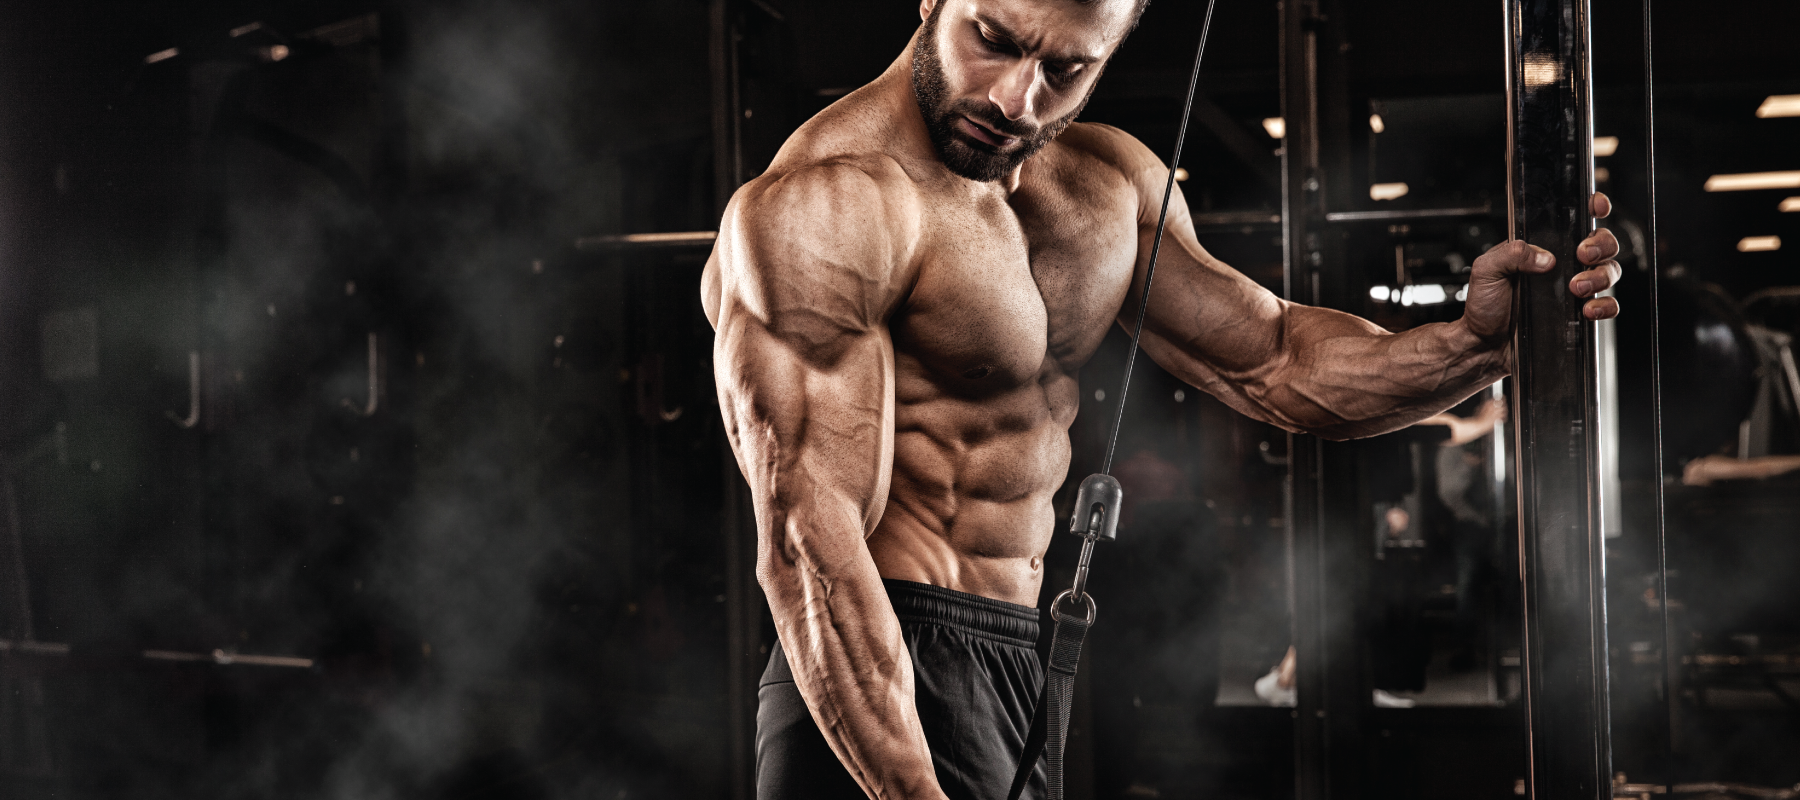 Higher Protein Needs in Bodybuilders?